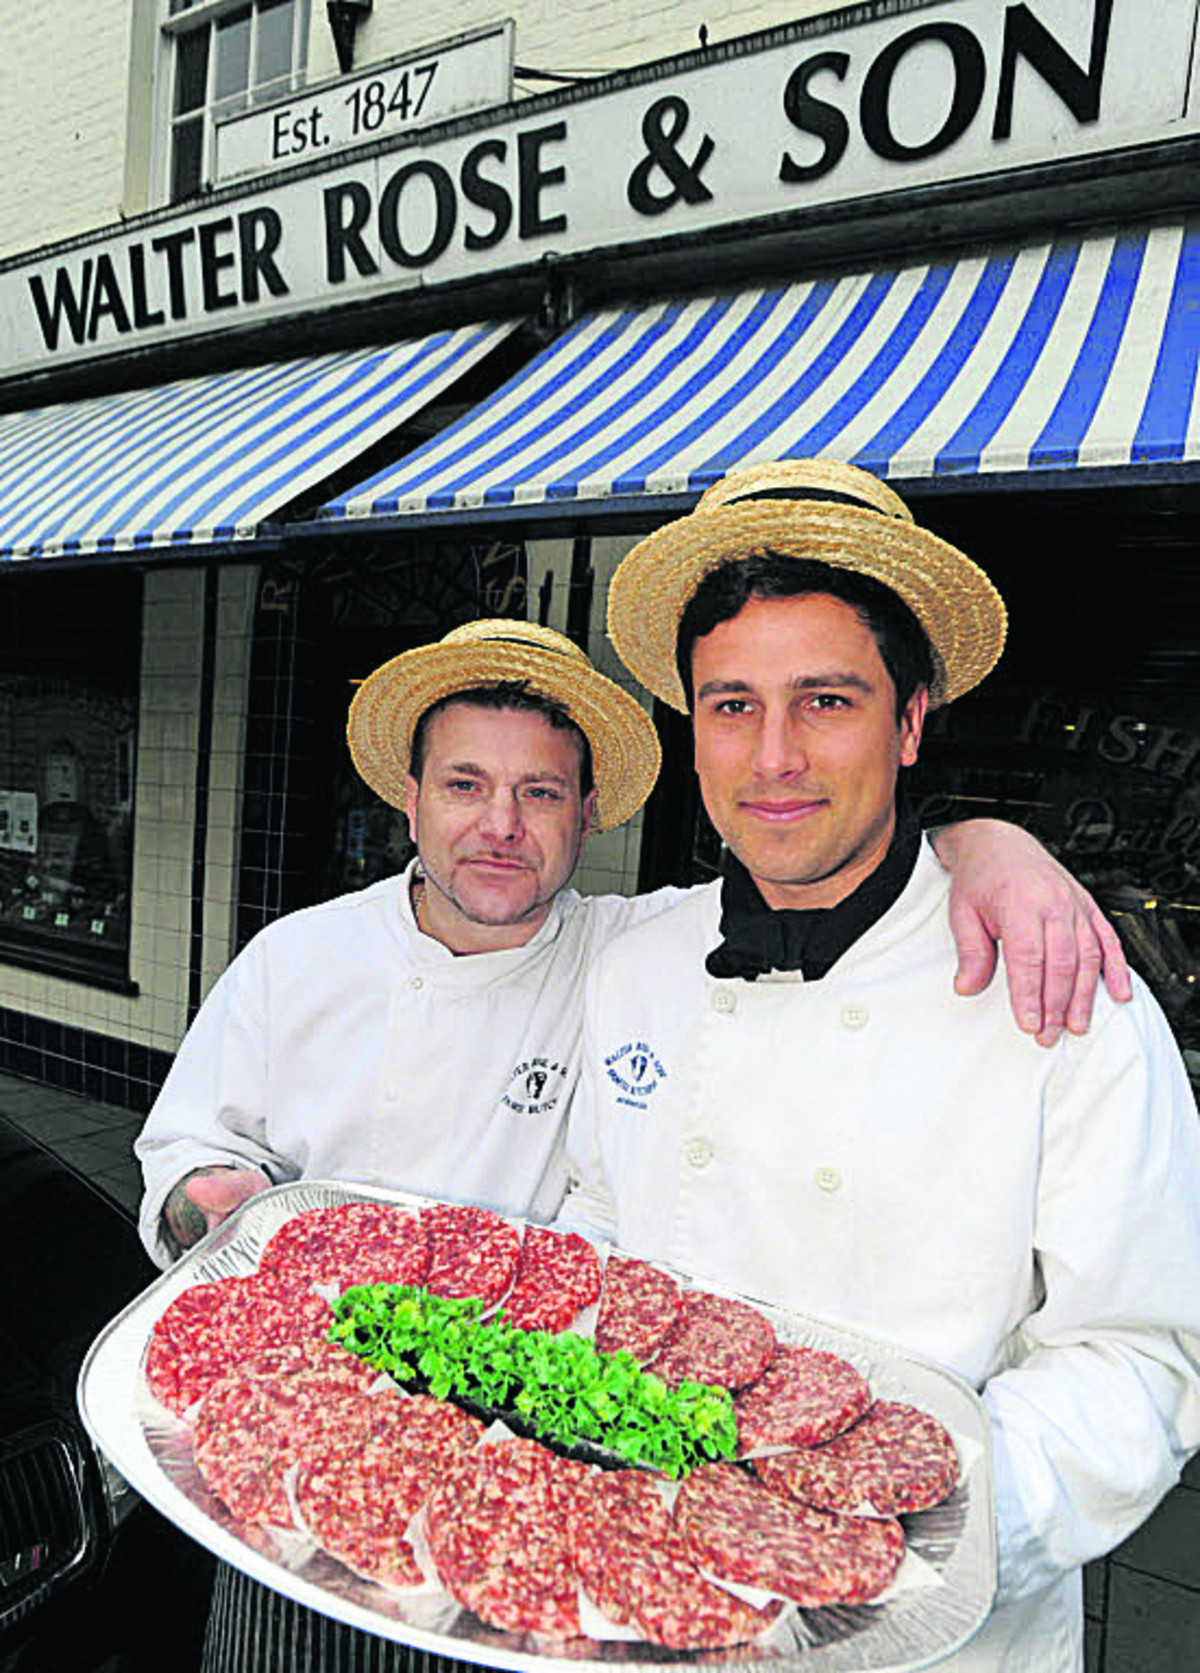 Paul Gilroy and Jack Cook, of Walter Rose & Son, with burgers which got to the 2012 finals of the England's Best Burger competition